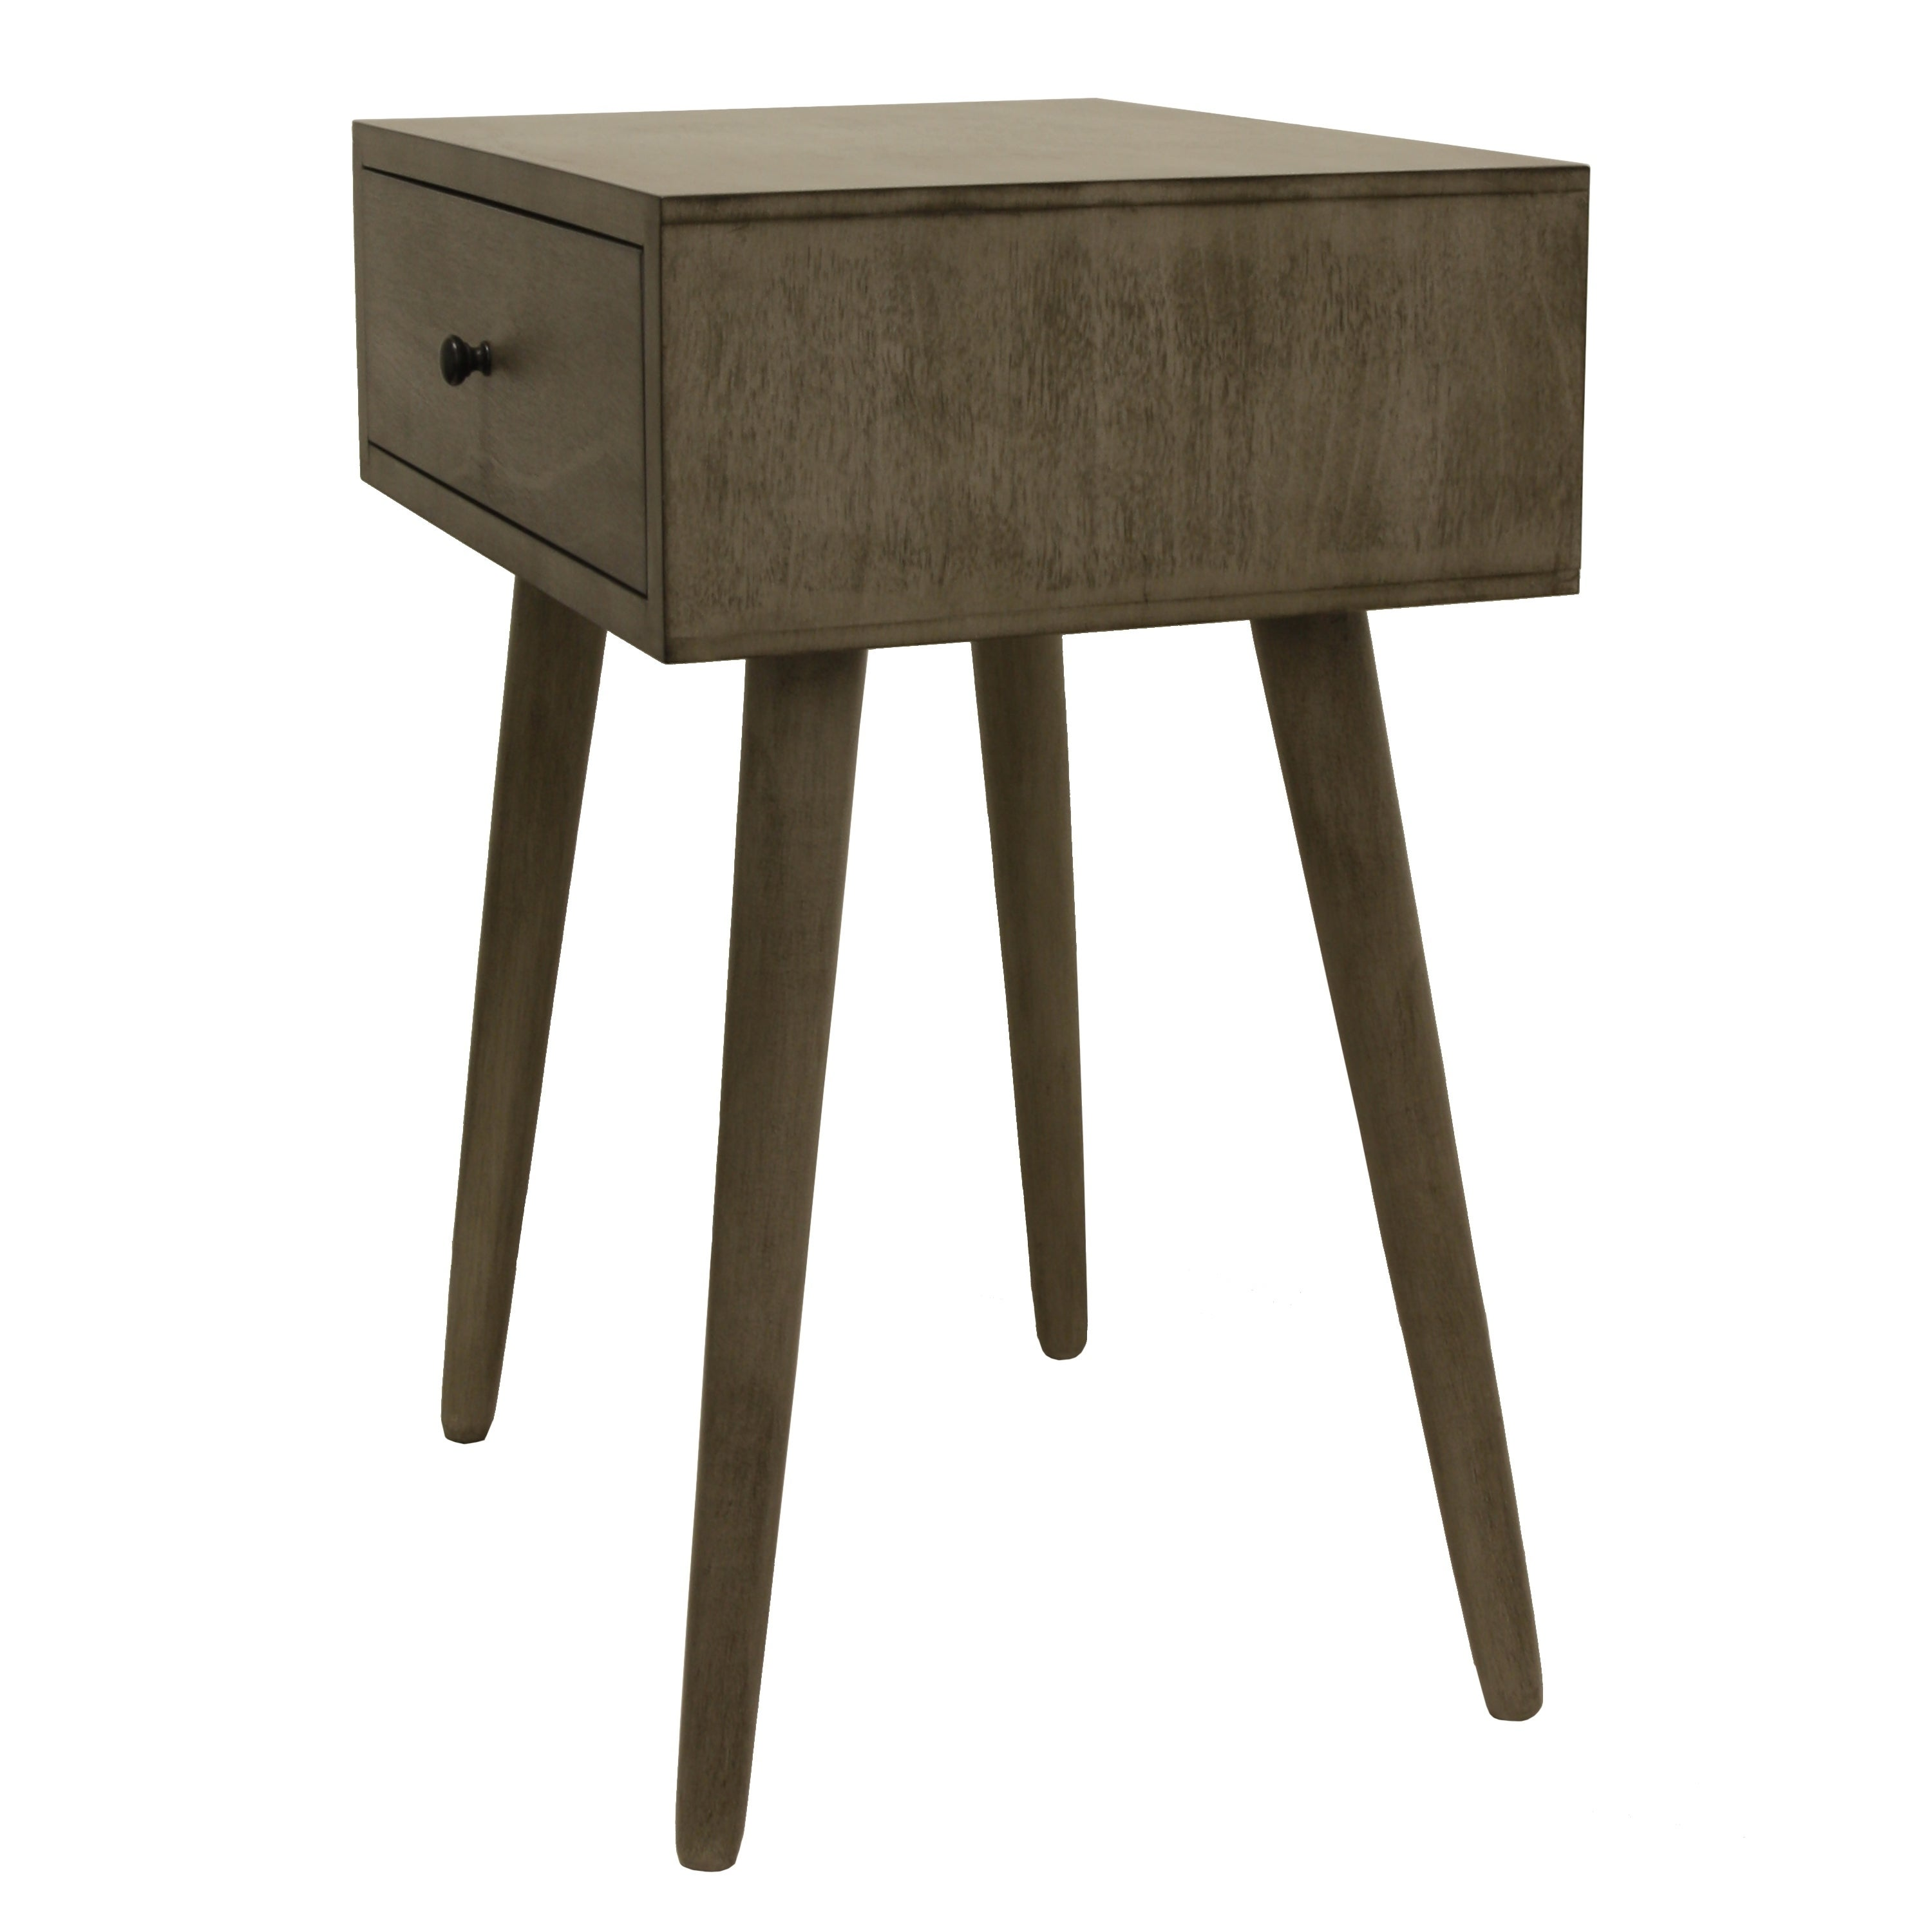 cdeef716b Shop Mid-Century Single Drawer Wood Side Table - Free Shipping Today -  Overstock - 12223530